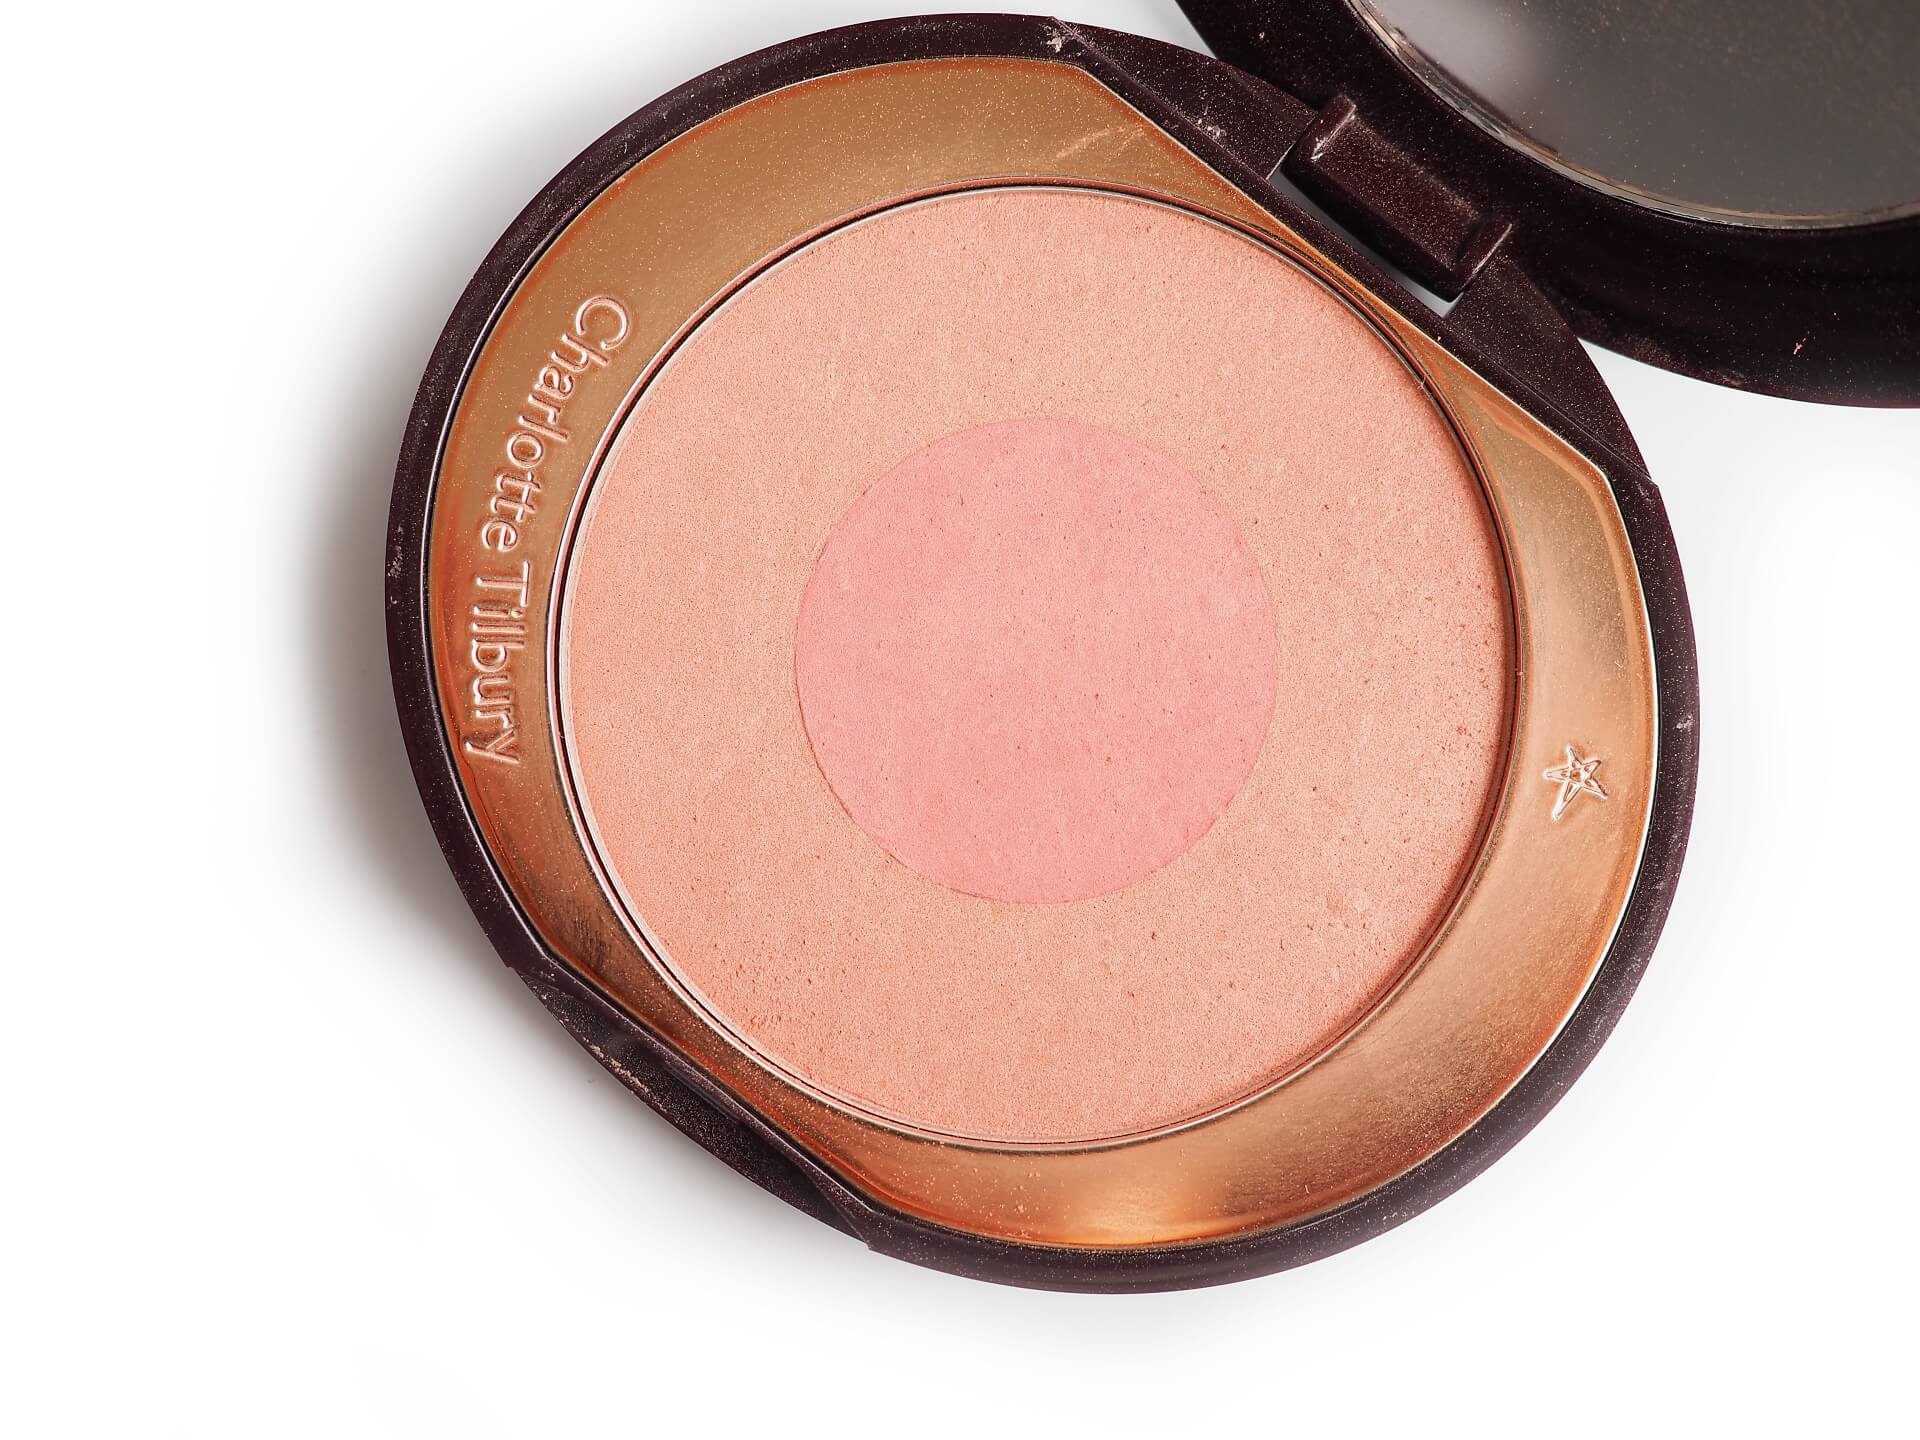 recenzja Charlotte Tilbury Ecstasy Cheek to Cheek Blusher